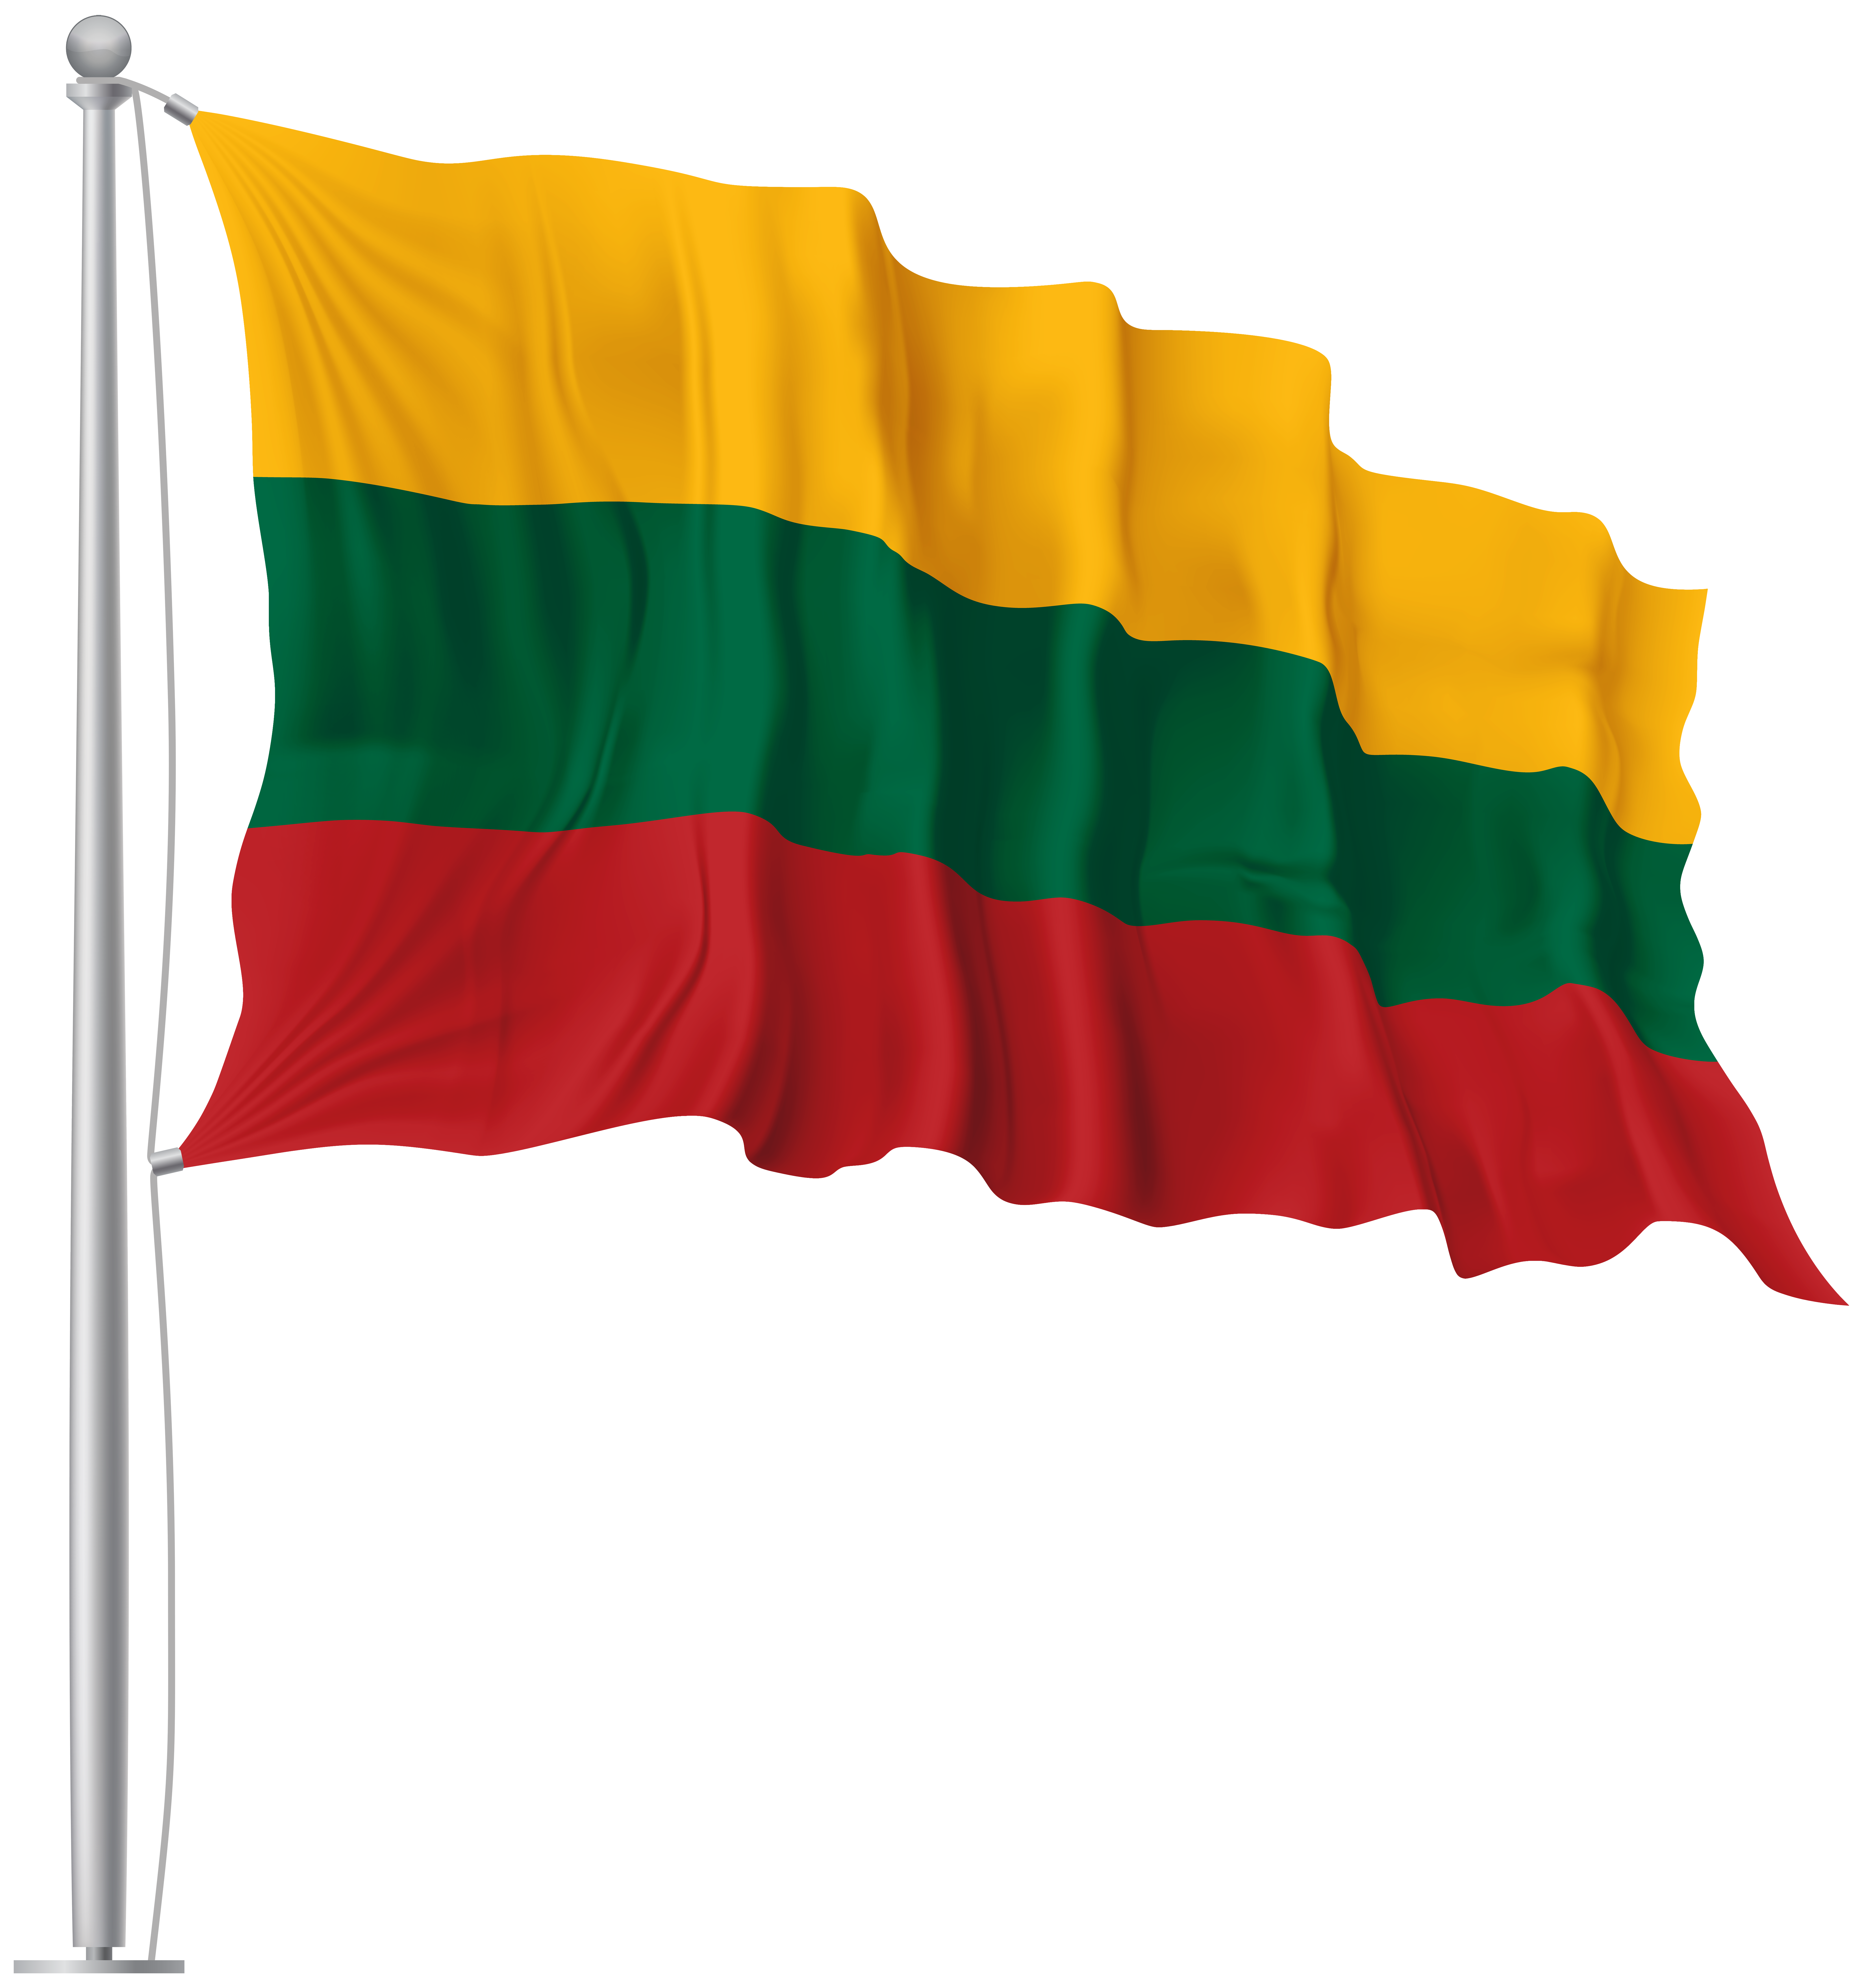 Lithuania waving flag image. Banner flags png clipart black and white library